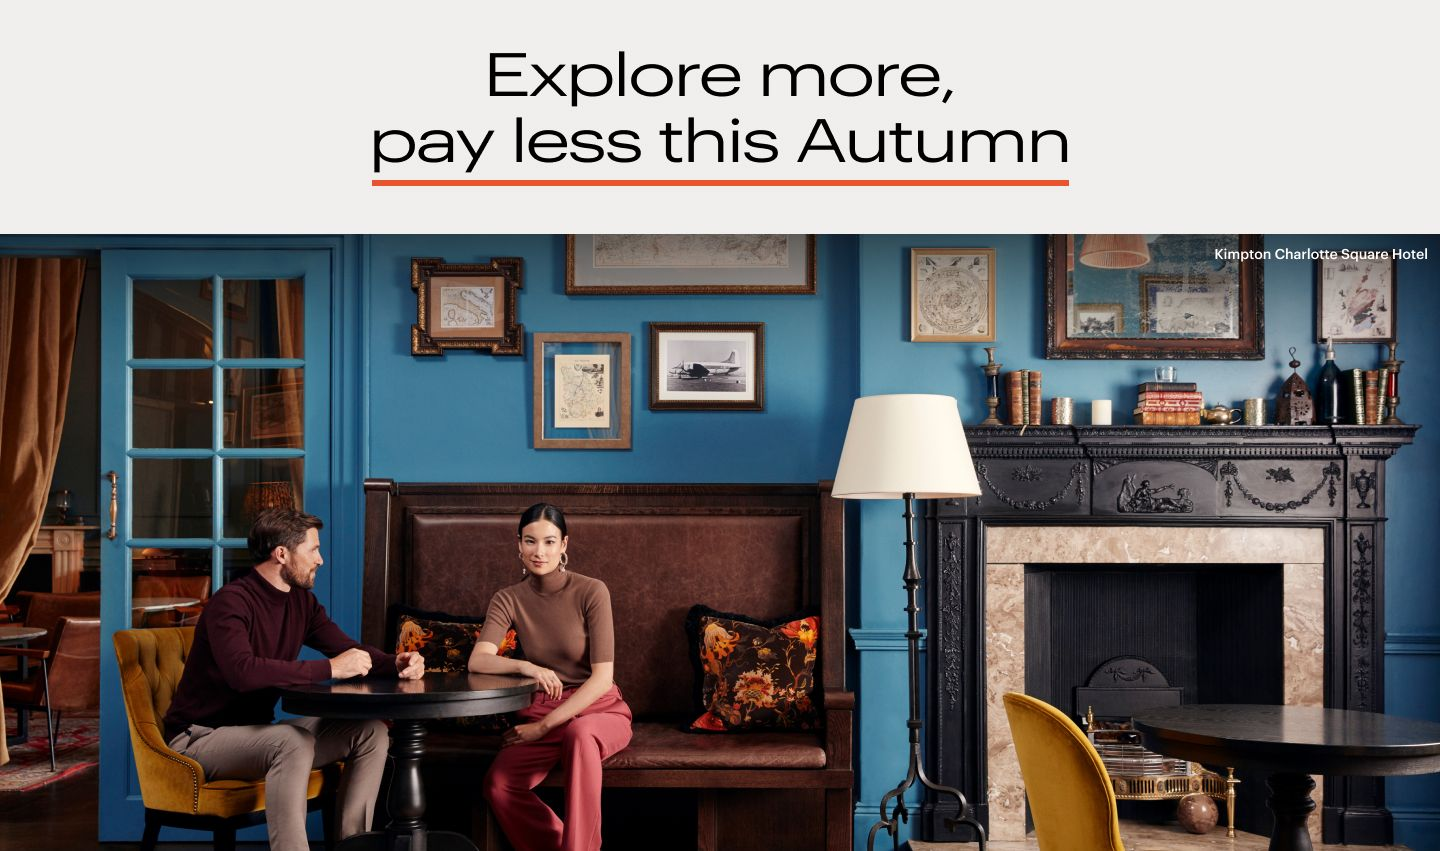 Save on your next getaway with our special Autumn offer